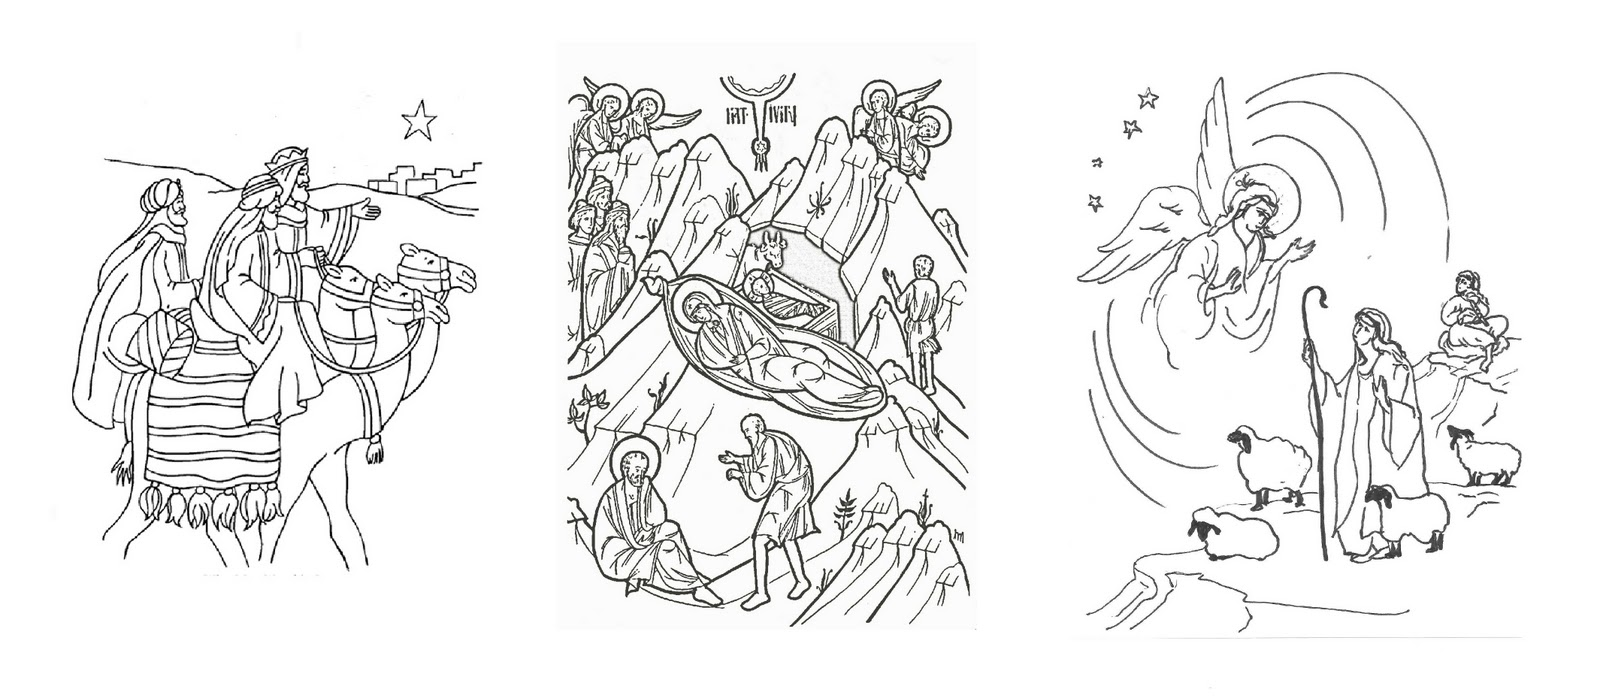 Christmas Coloring Pages Shepherds With Orthodox Christian Education Symbolism